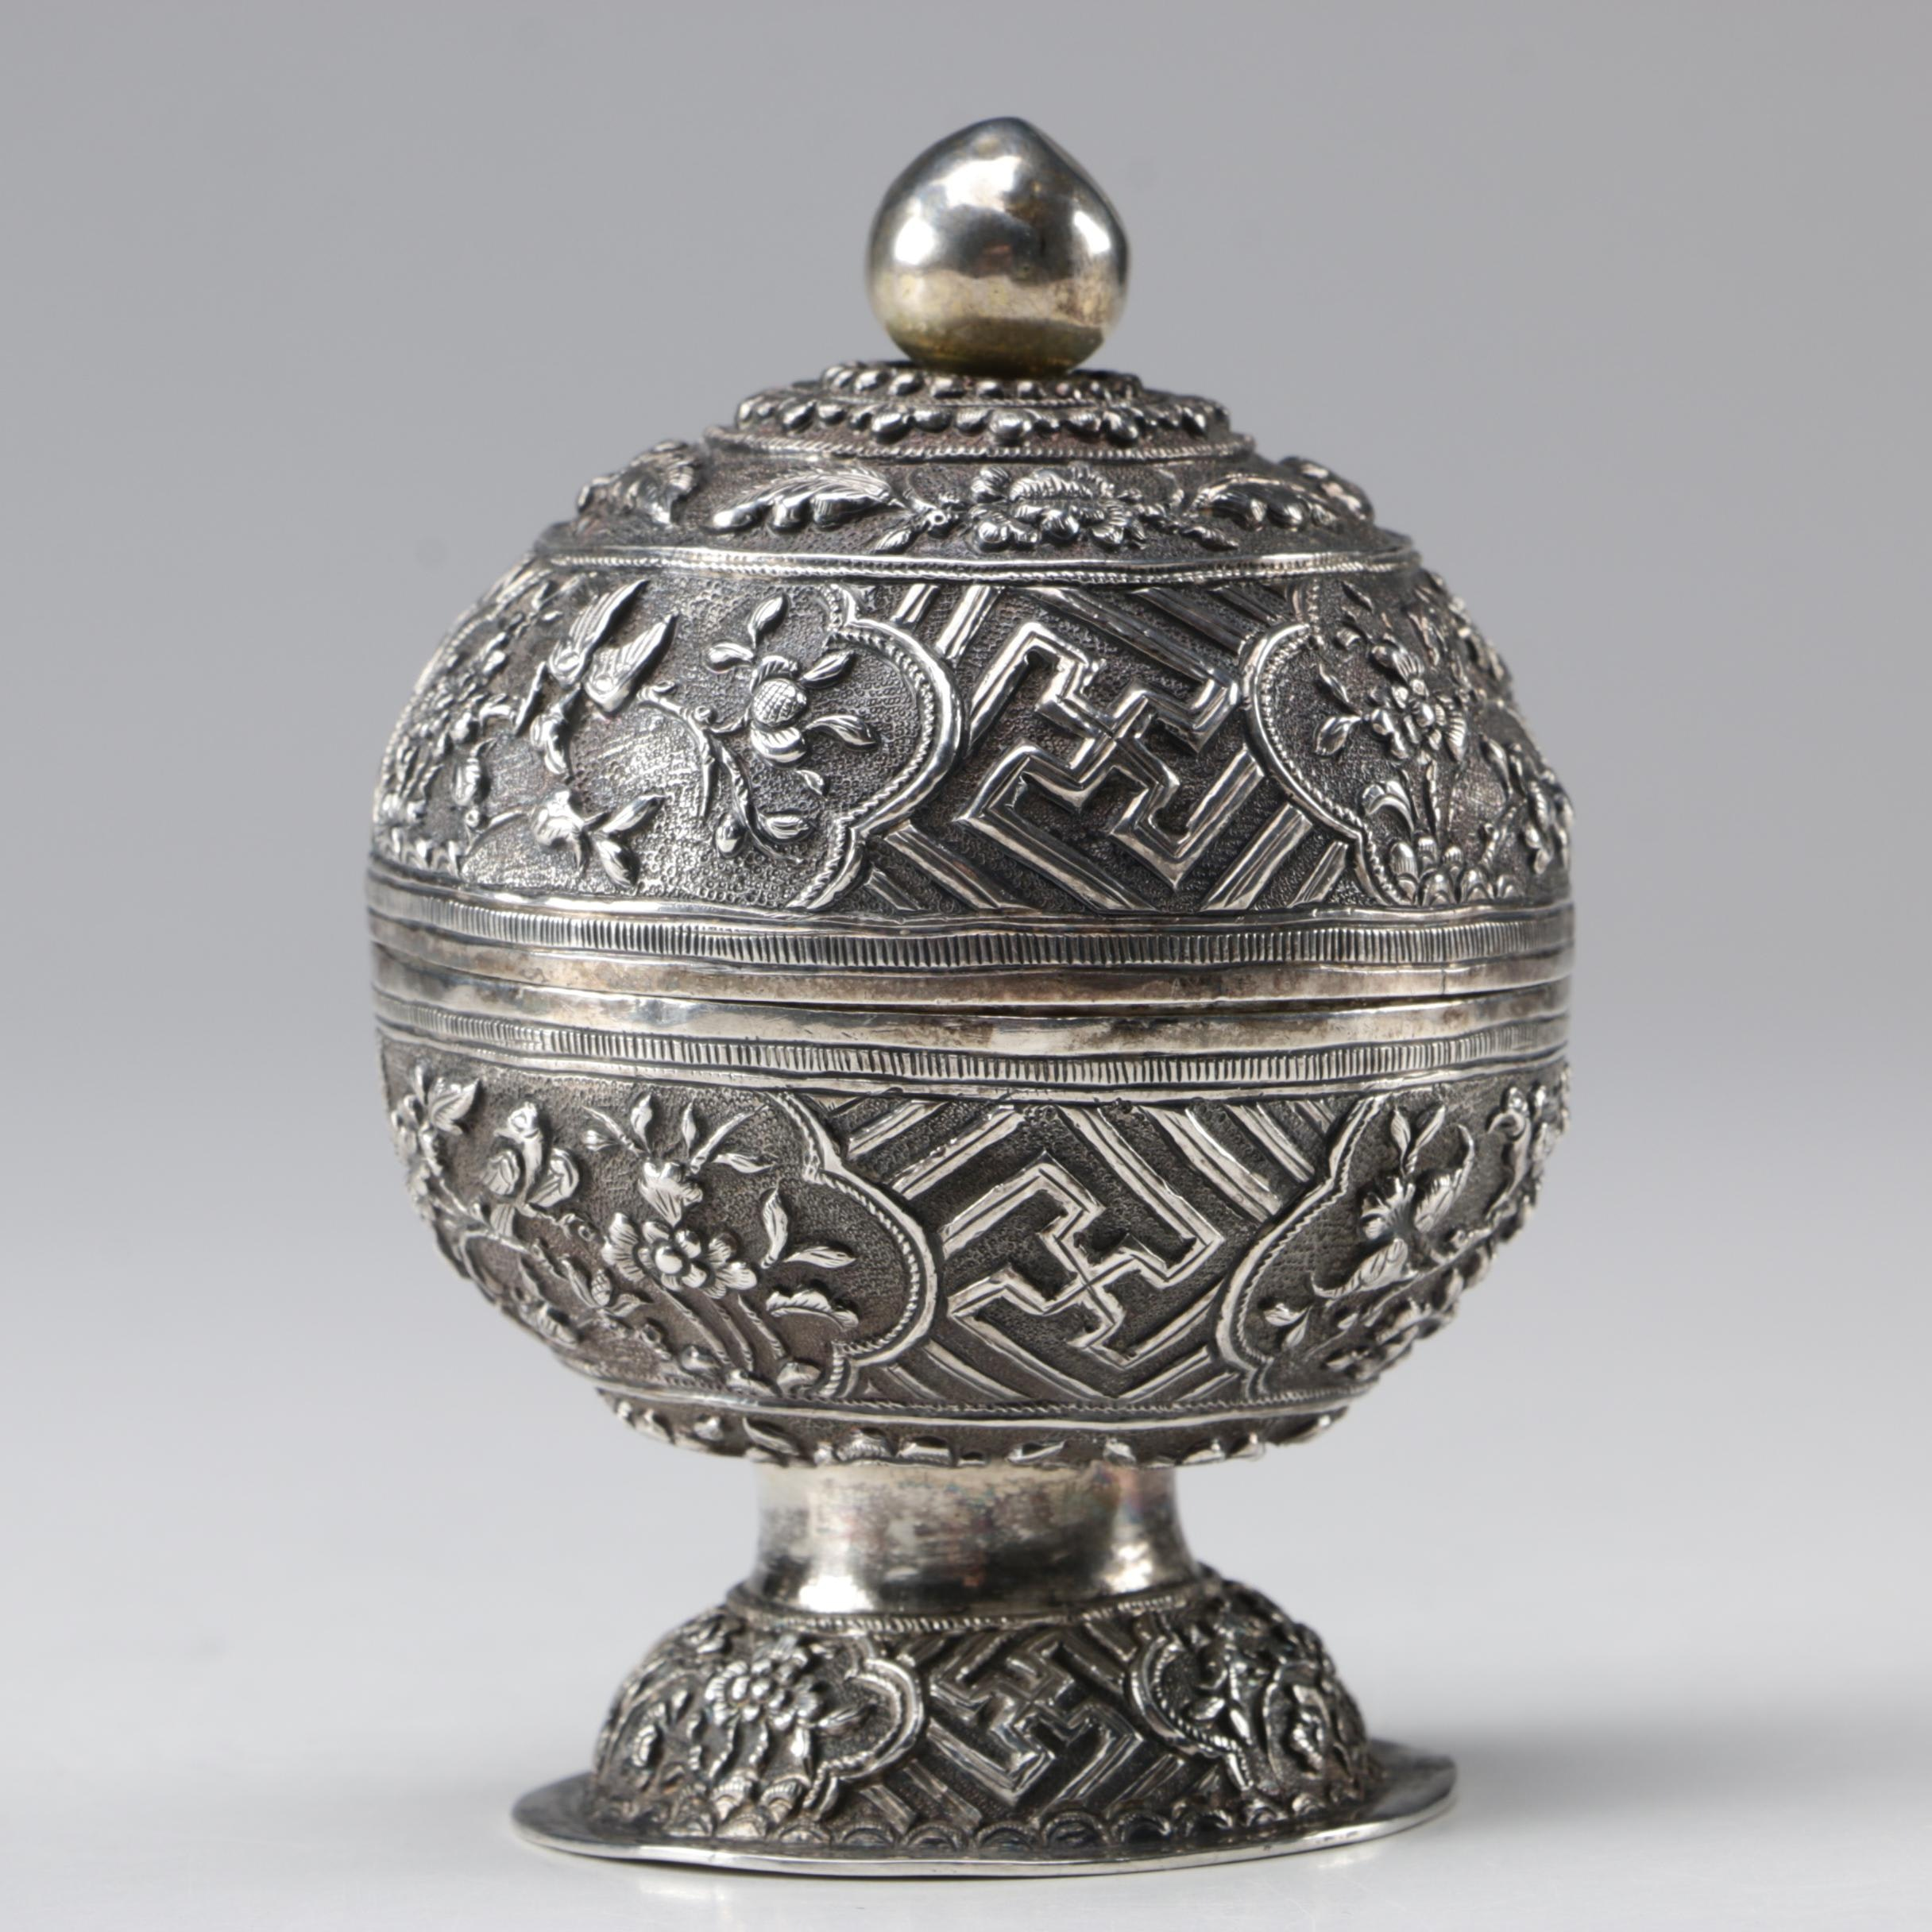 Straits Chinese Silver Dou-Form Jar with Floral Motif, Qing Dynasty